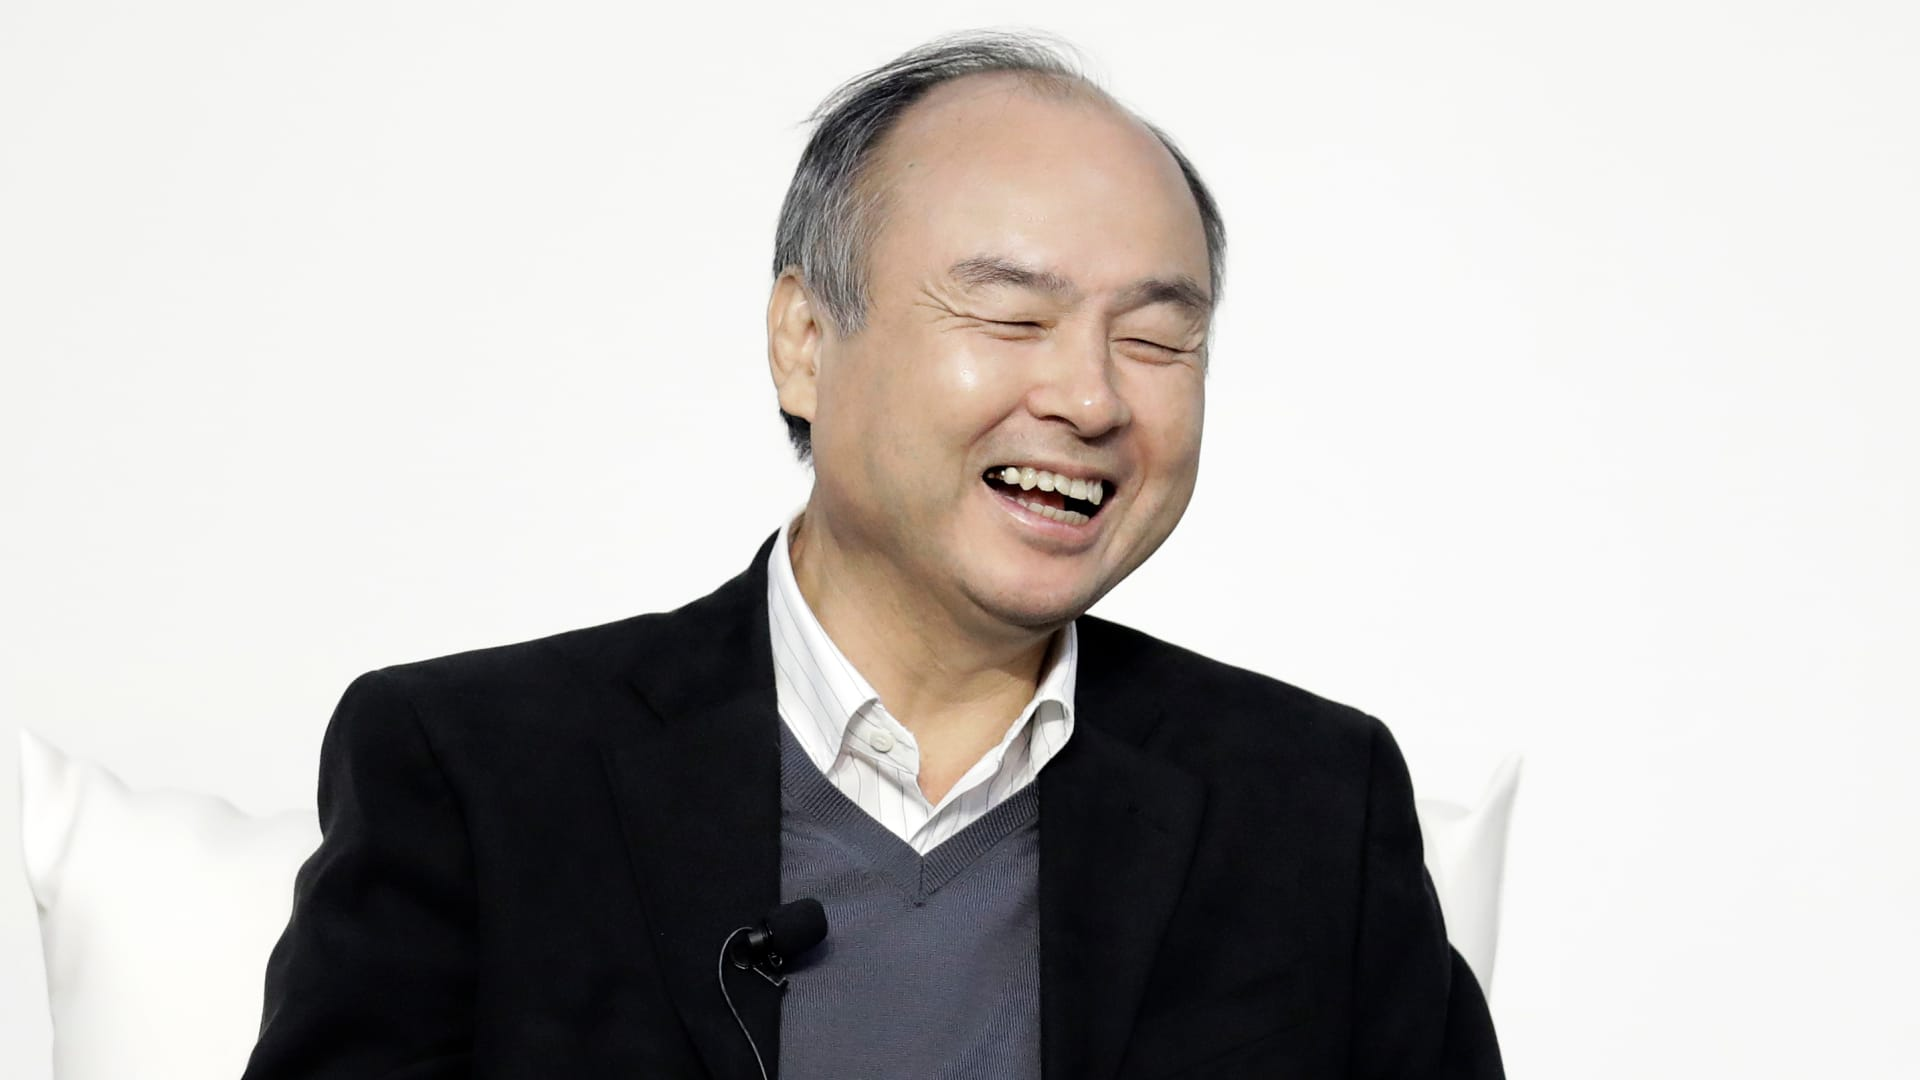 Masayoshi Son, chairman and chief executive officer of SoftBank, reacts during a dialog session with Jack Ma, former chairman of Alibaba, not pictured, at Tokyo Forum 2019 in Tokyo, Japan, on Friday, Dec. 6, 2019.